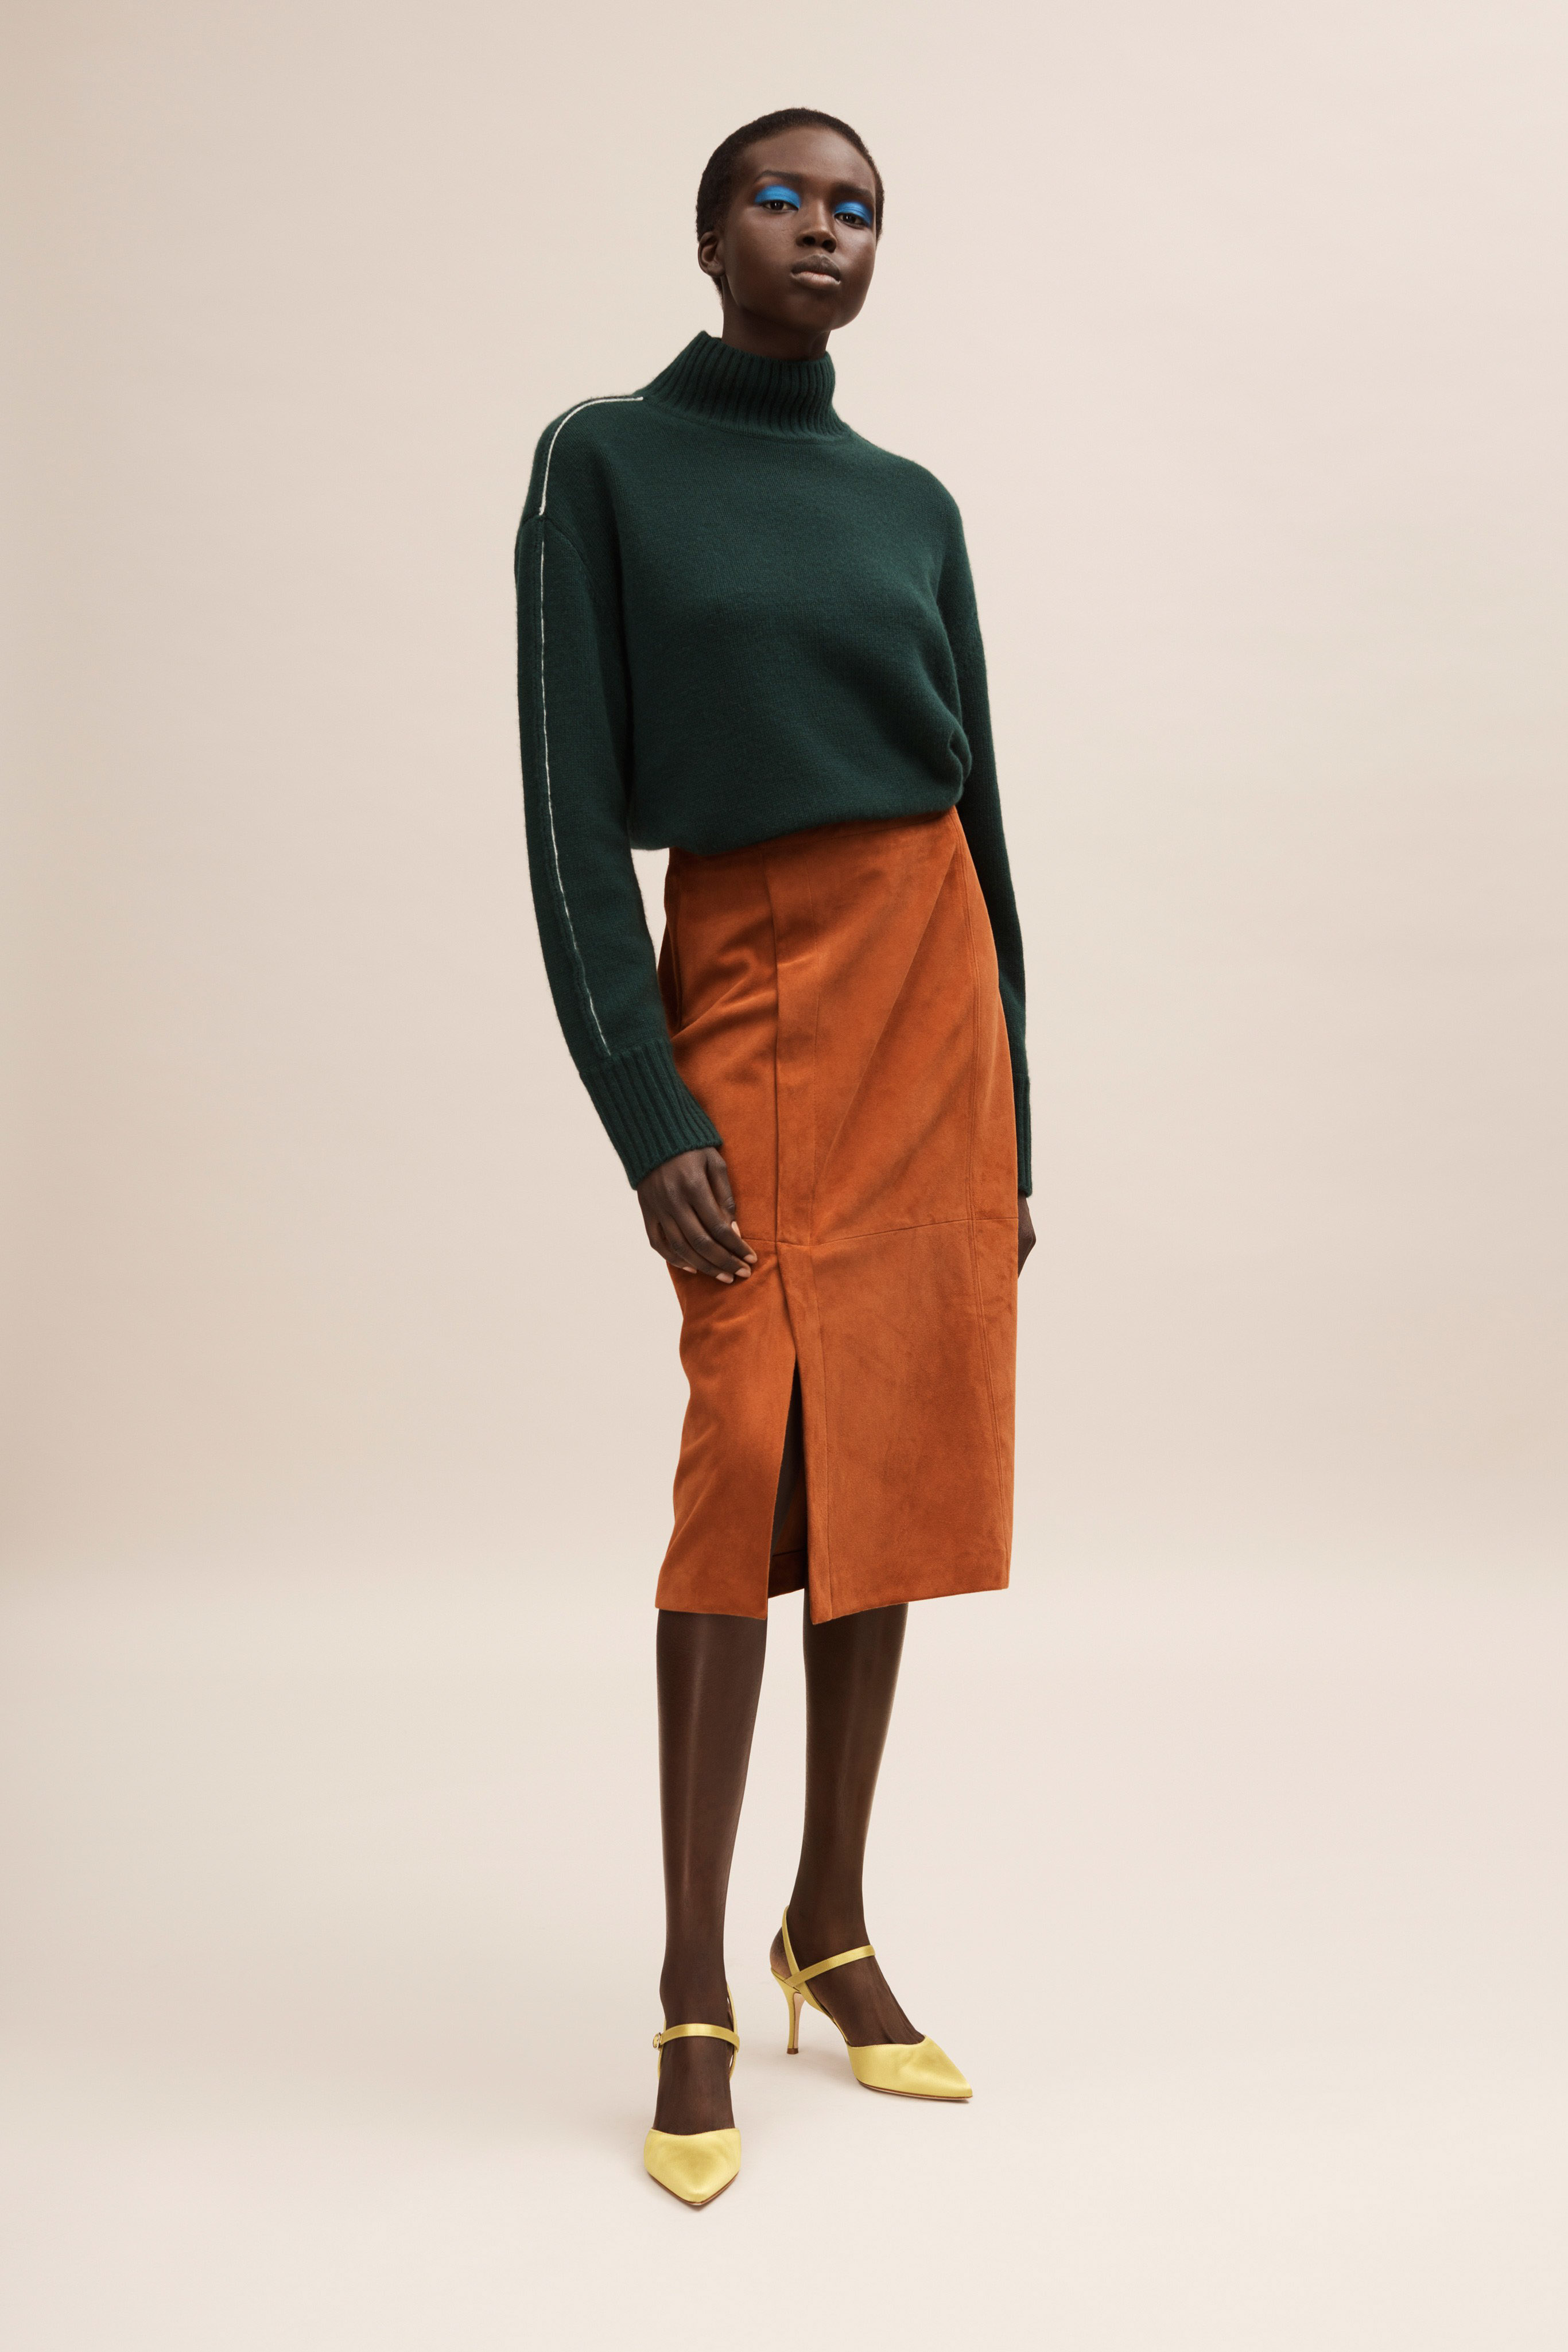 Jason Wu Pre fall 2020 Lookbook trends runway coverage Ready To Wear Vogue skirt with slit